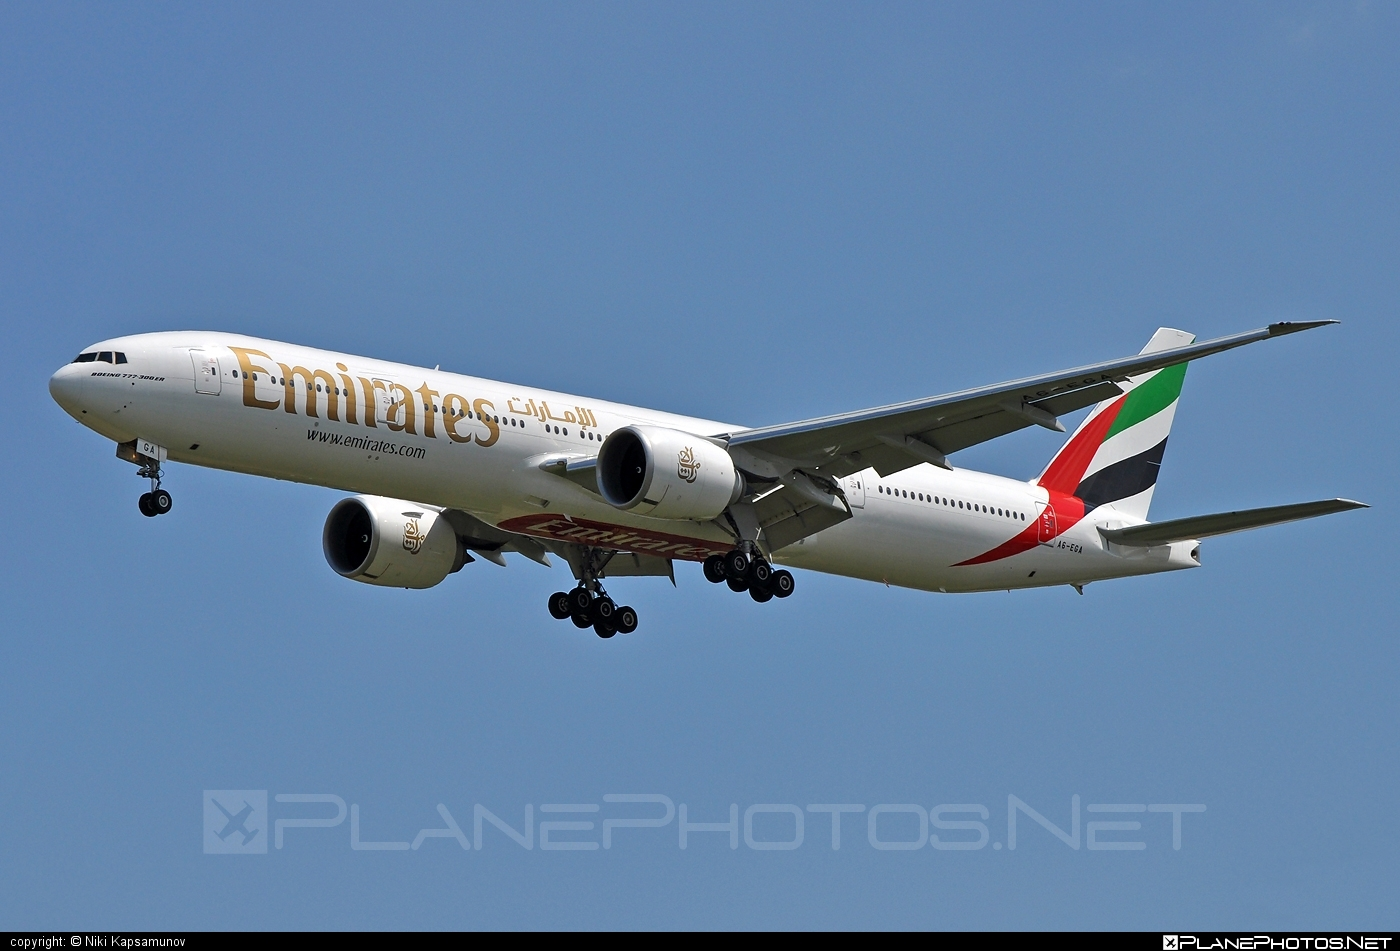 Boeing 777-300ER - A6-EGA operated by Emirates #b777 #b777er #boeing #boeing777 #emirates #tripleseven